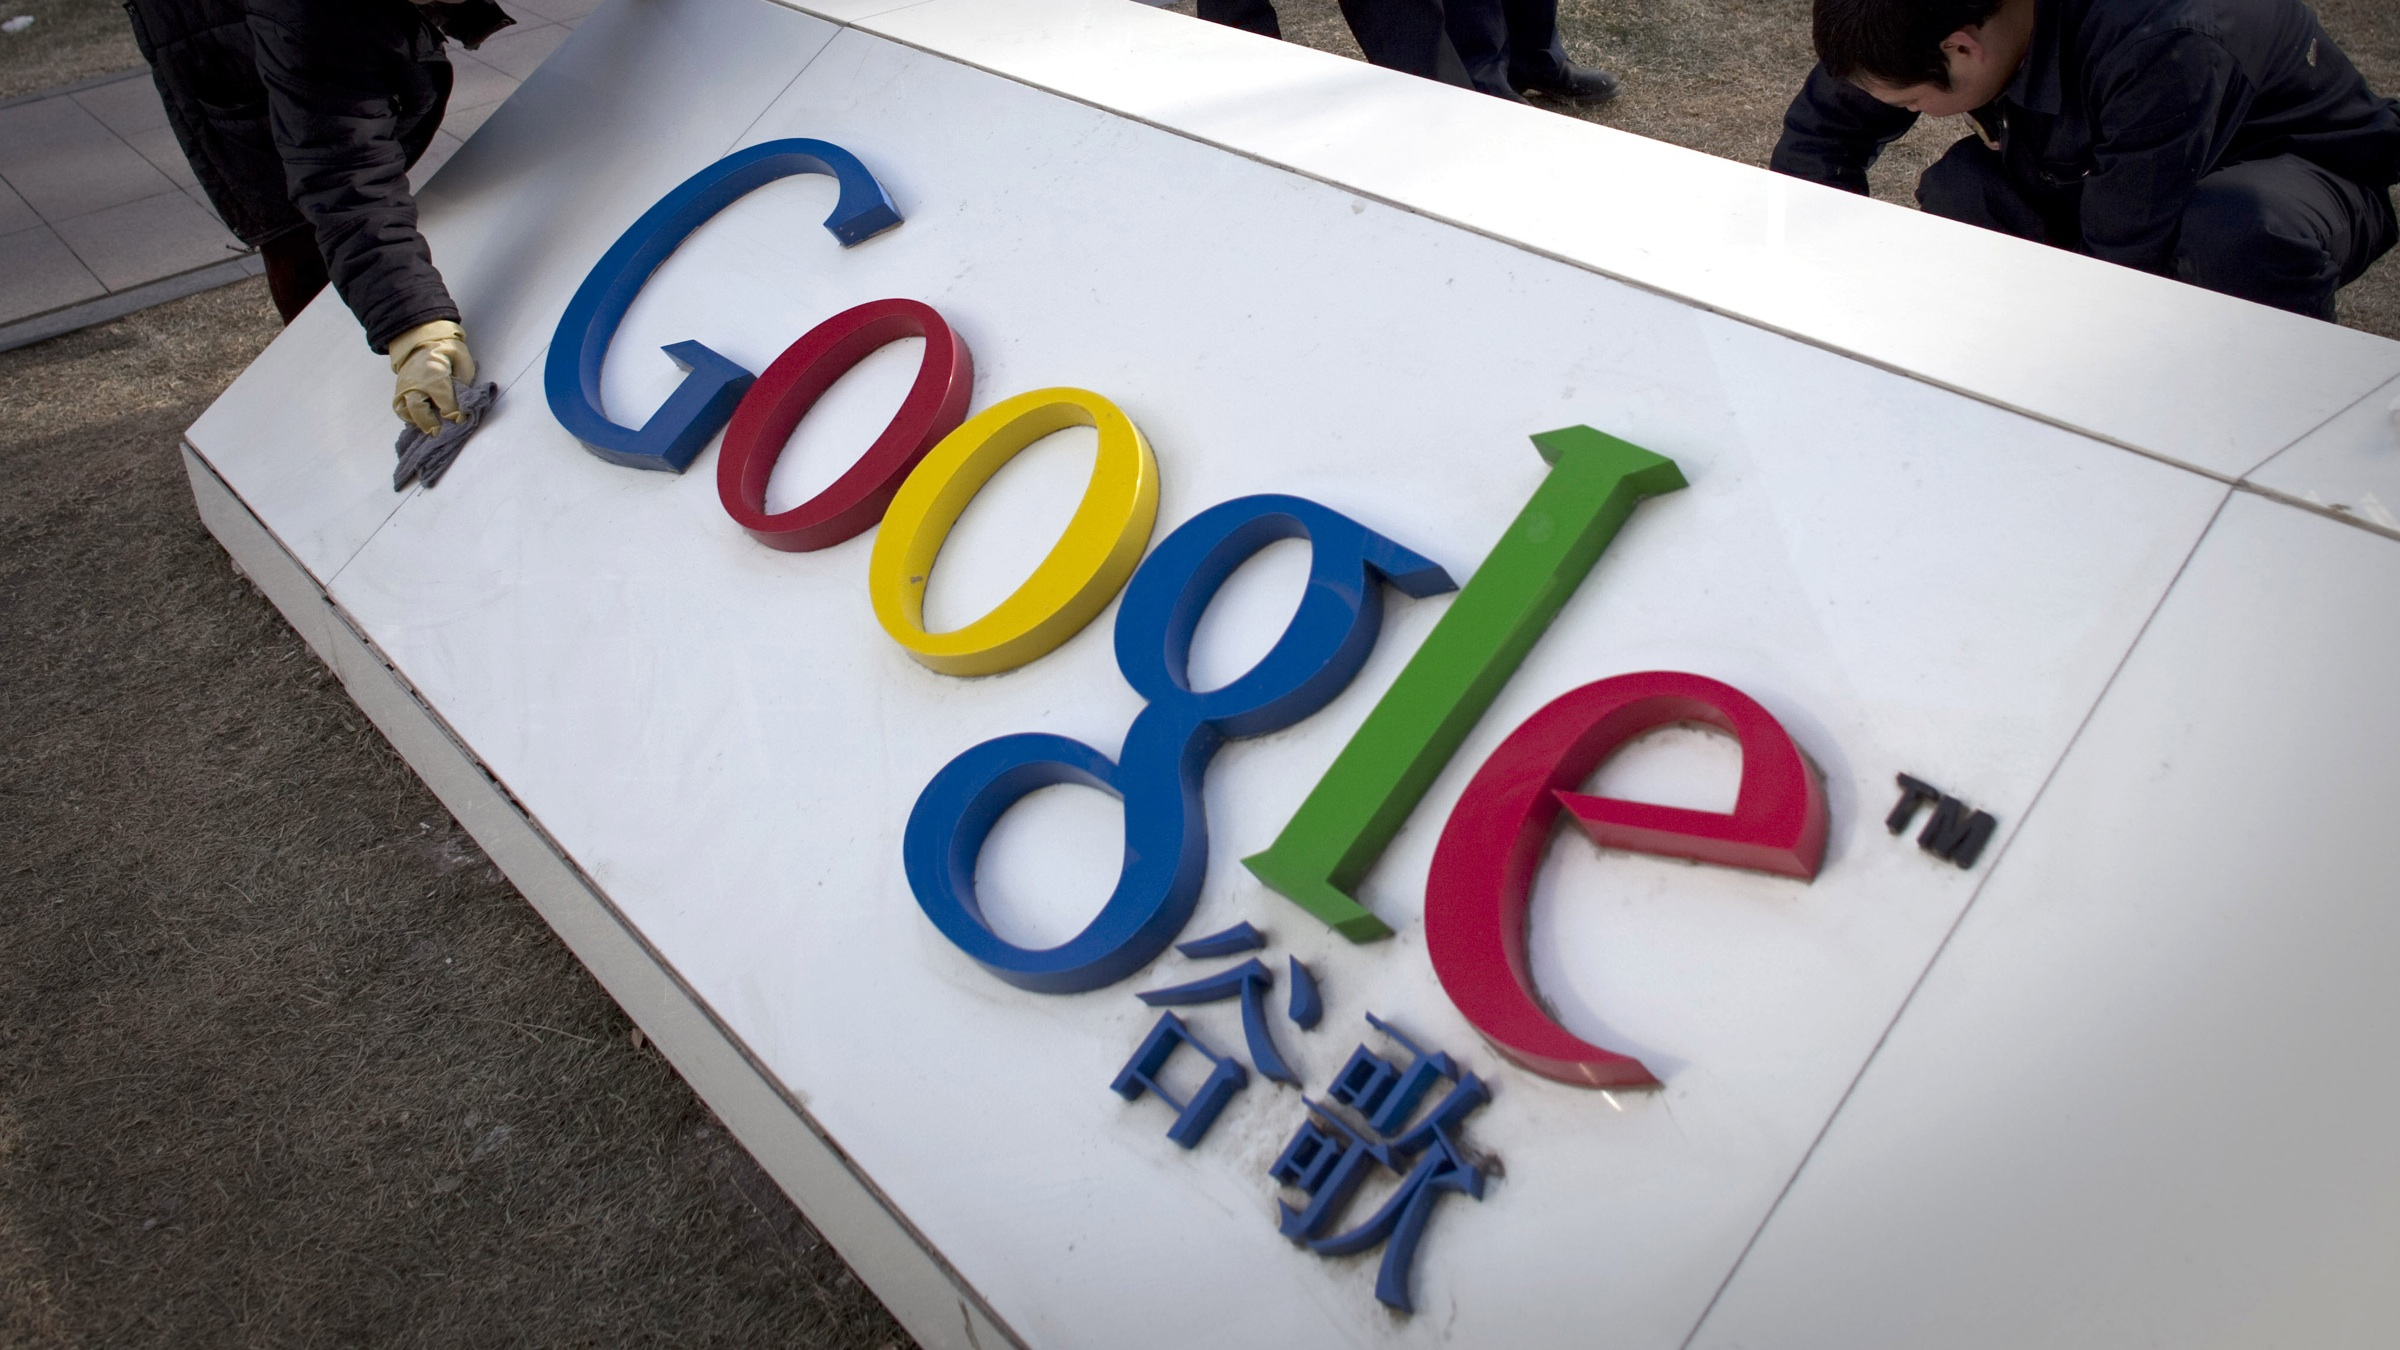 In this photo taken on Monday, Jan. 25, 2010, workers clean and repair broken part of a marble tablet bearing Google's logo in front of Google China's headquarters building in Beijing, China. Google's Android operating system should face no limits on its use by China's phone companies so long as it complies with Chinese regulations, the government said Wednesday. (AP Photo/Alexander F. Yuan)